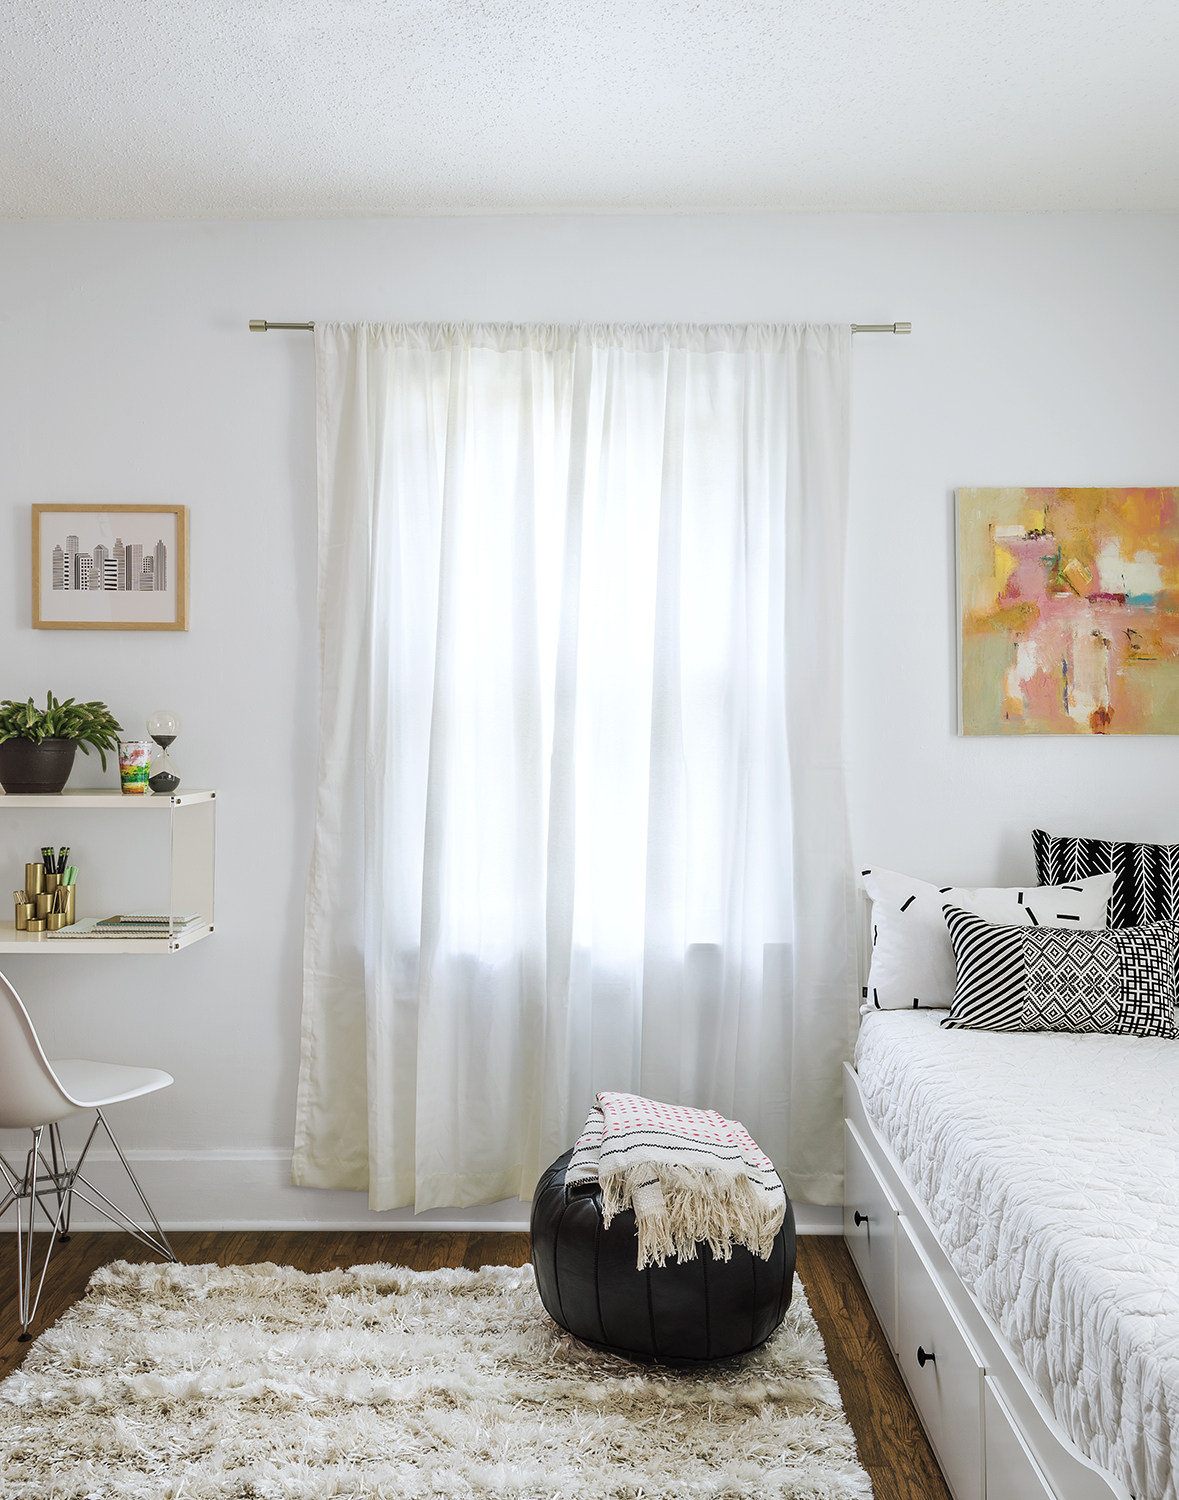 Spare bedroom/office